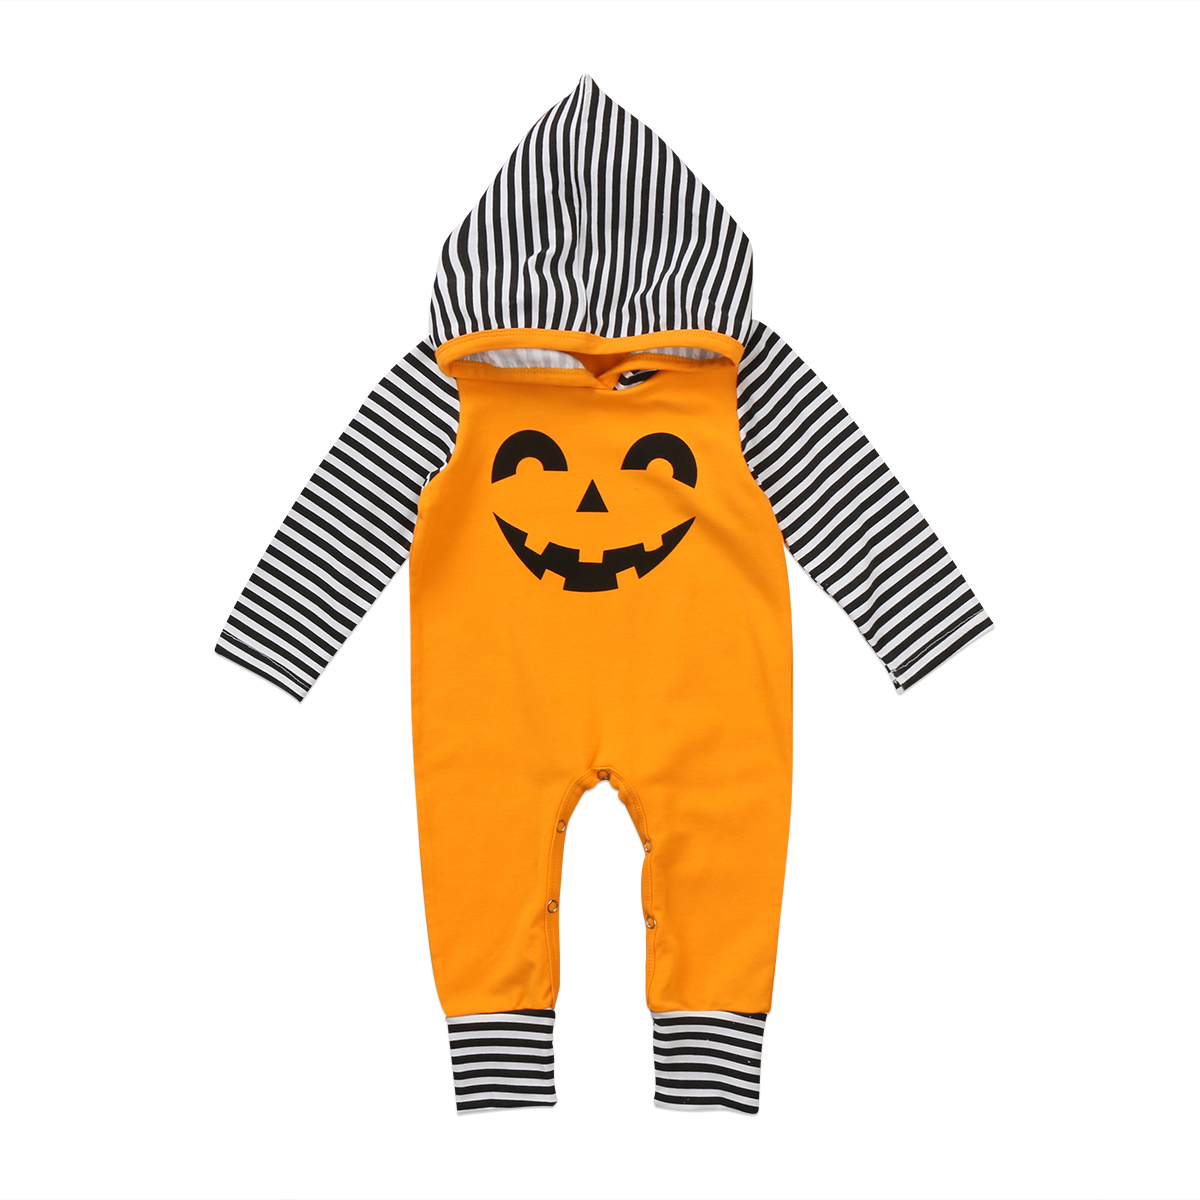 Newborn Baby Boy Girl Warm Romper Jumpsuit Bodysuit Hooded Clothes Halloween Set Baby boy baby girl halloween hooded jumpsuit newborn baby bodysuit infant jumpsuit overall summer 100% cotton short sleeves o neck boy girl romper clothes set